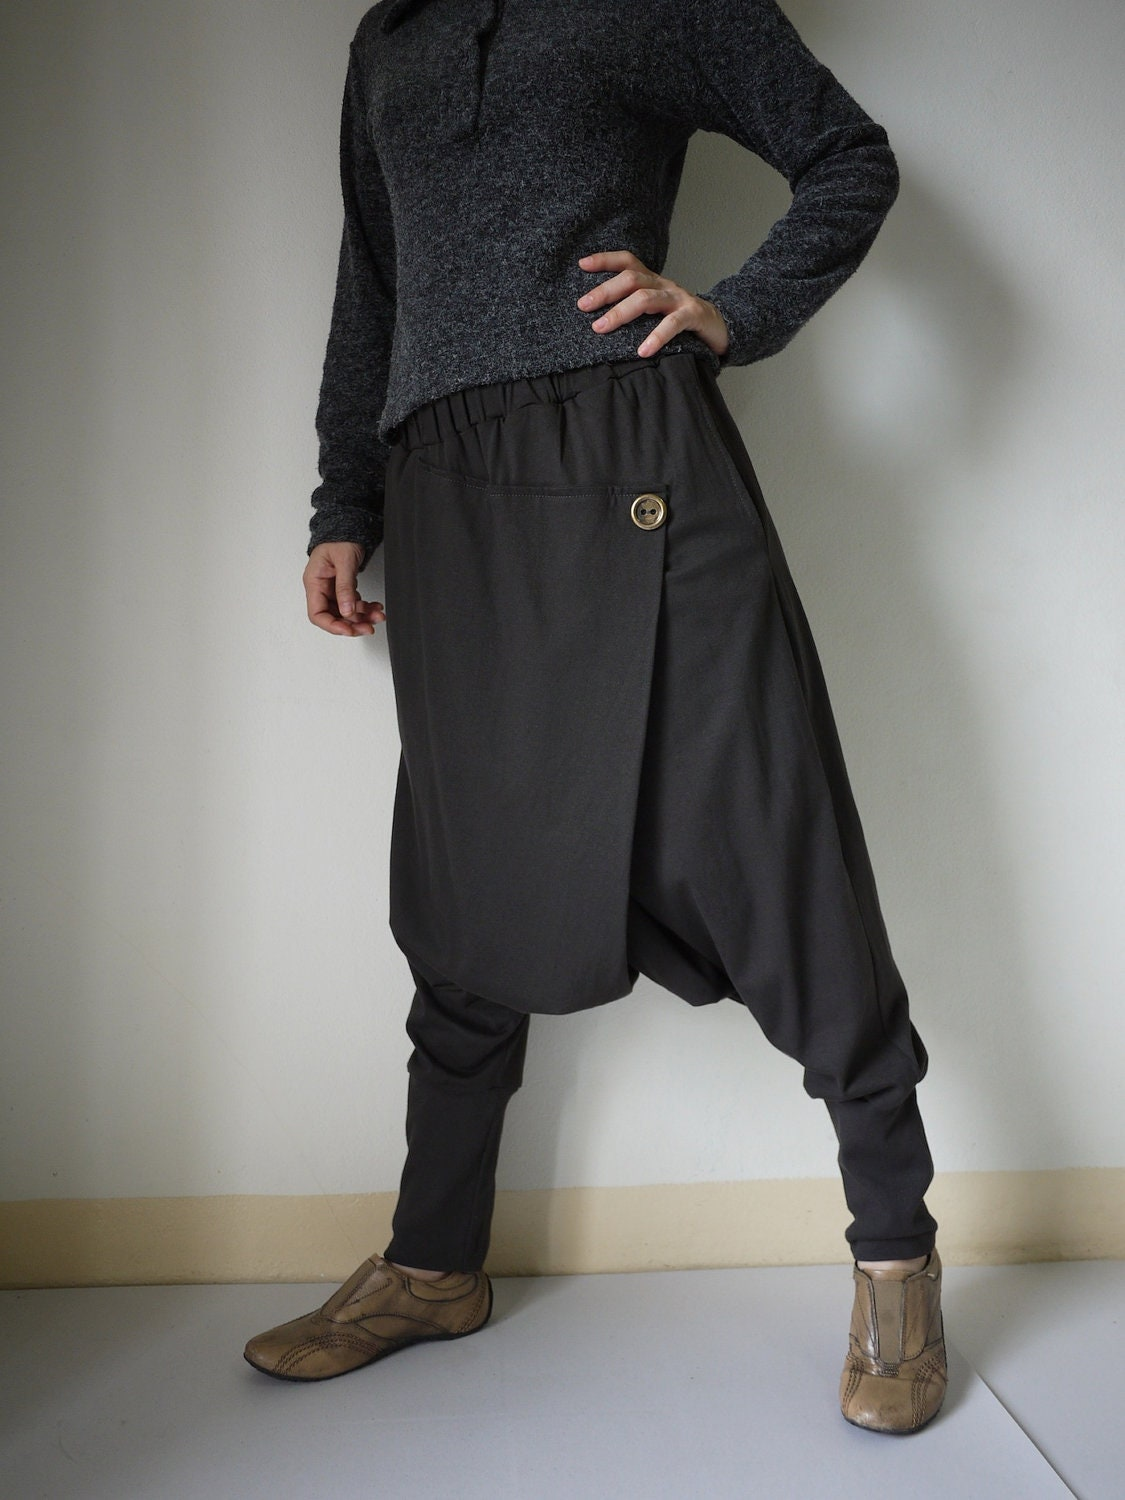 Simple Pants Black High Waisted Pants Yoga Pants Leather Pants Harem Pants Boho Pants Drop Crotch Pants Chic Swag Swag Top Sweater Winter Swag Sexy Set Crop Top And Skirt Set Crop Tops Crop Cropped Sweater Cropped Hoodie Hoodie Sweat